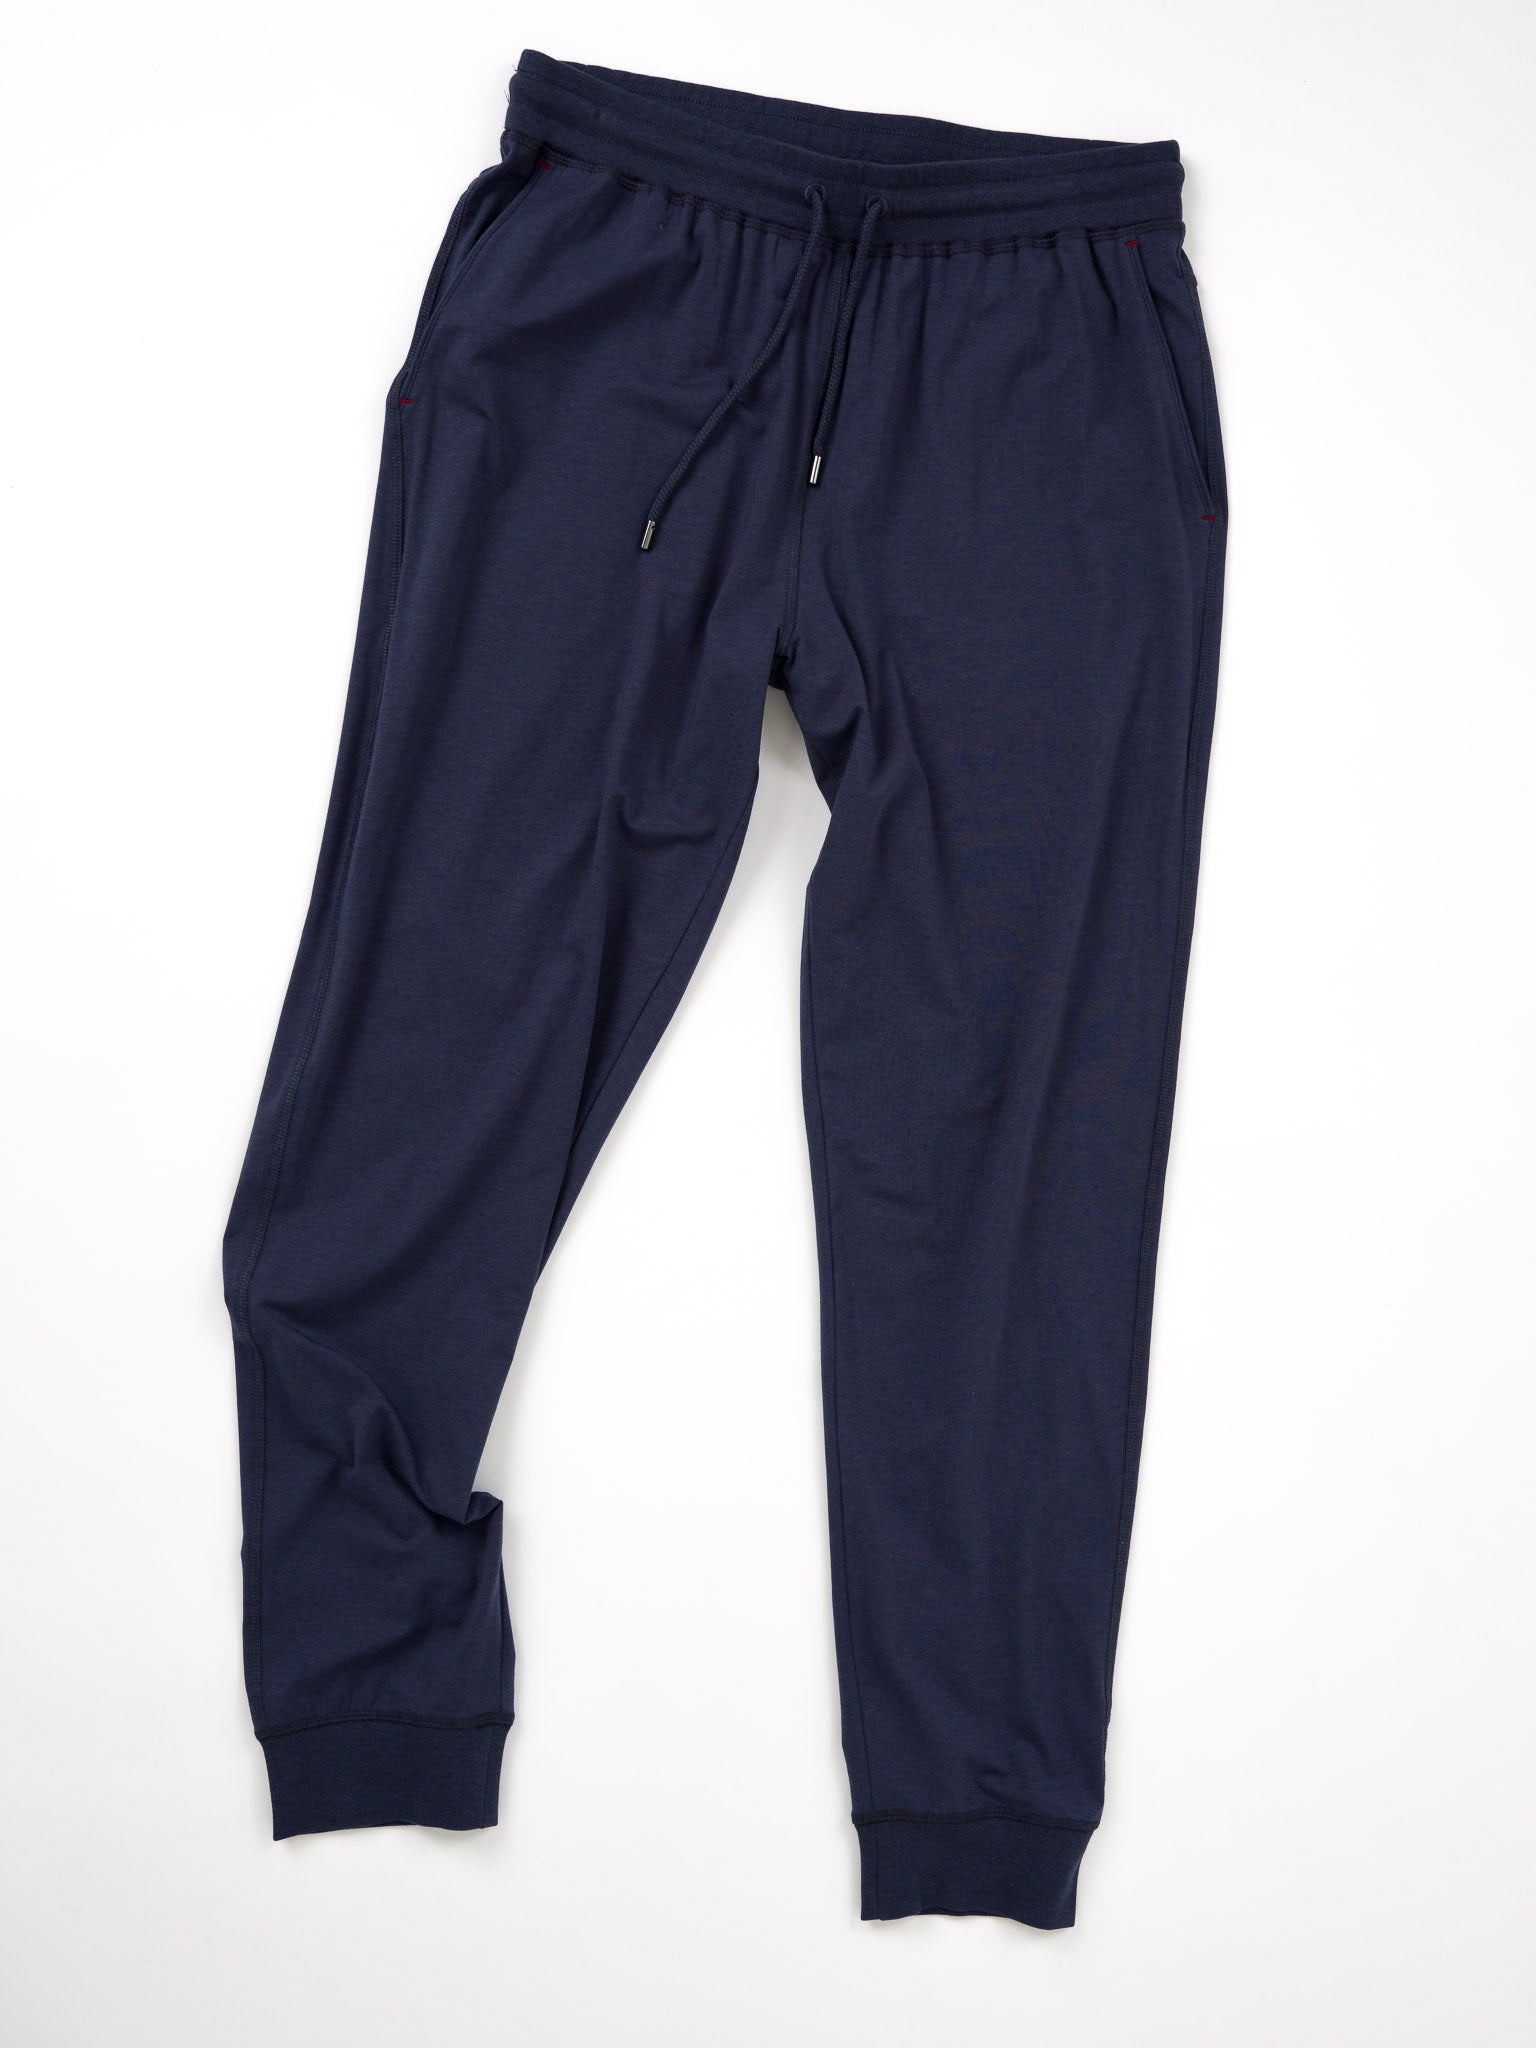 Cotton/Modal Cuffed Pant